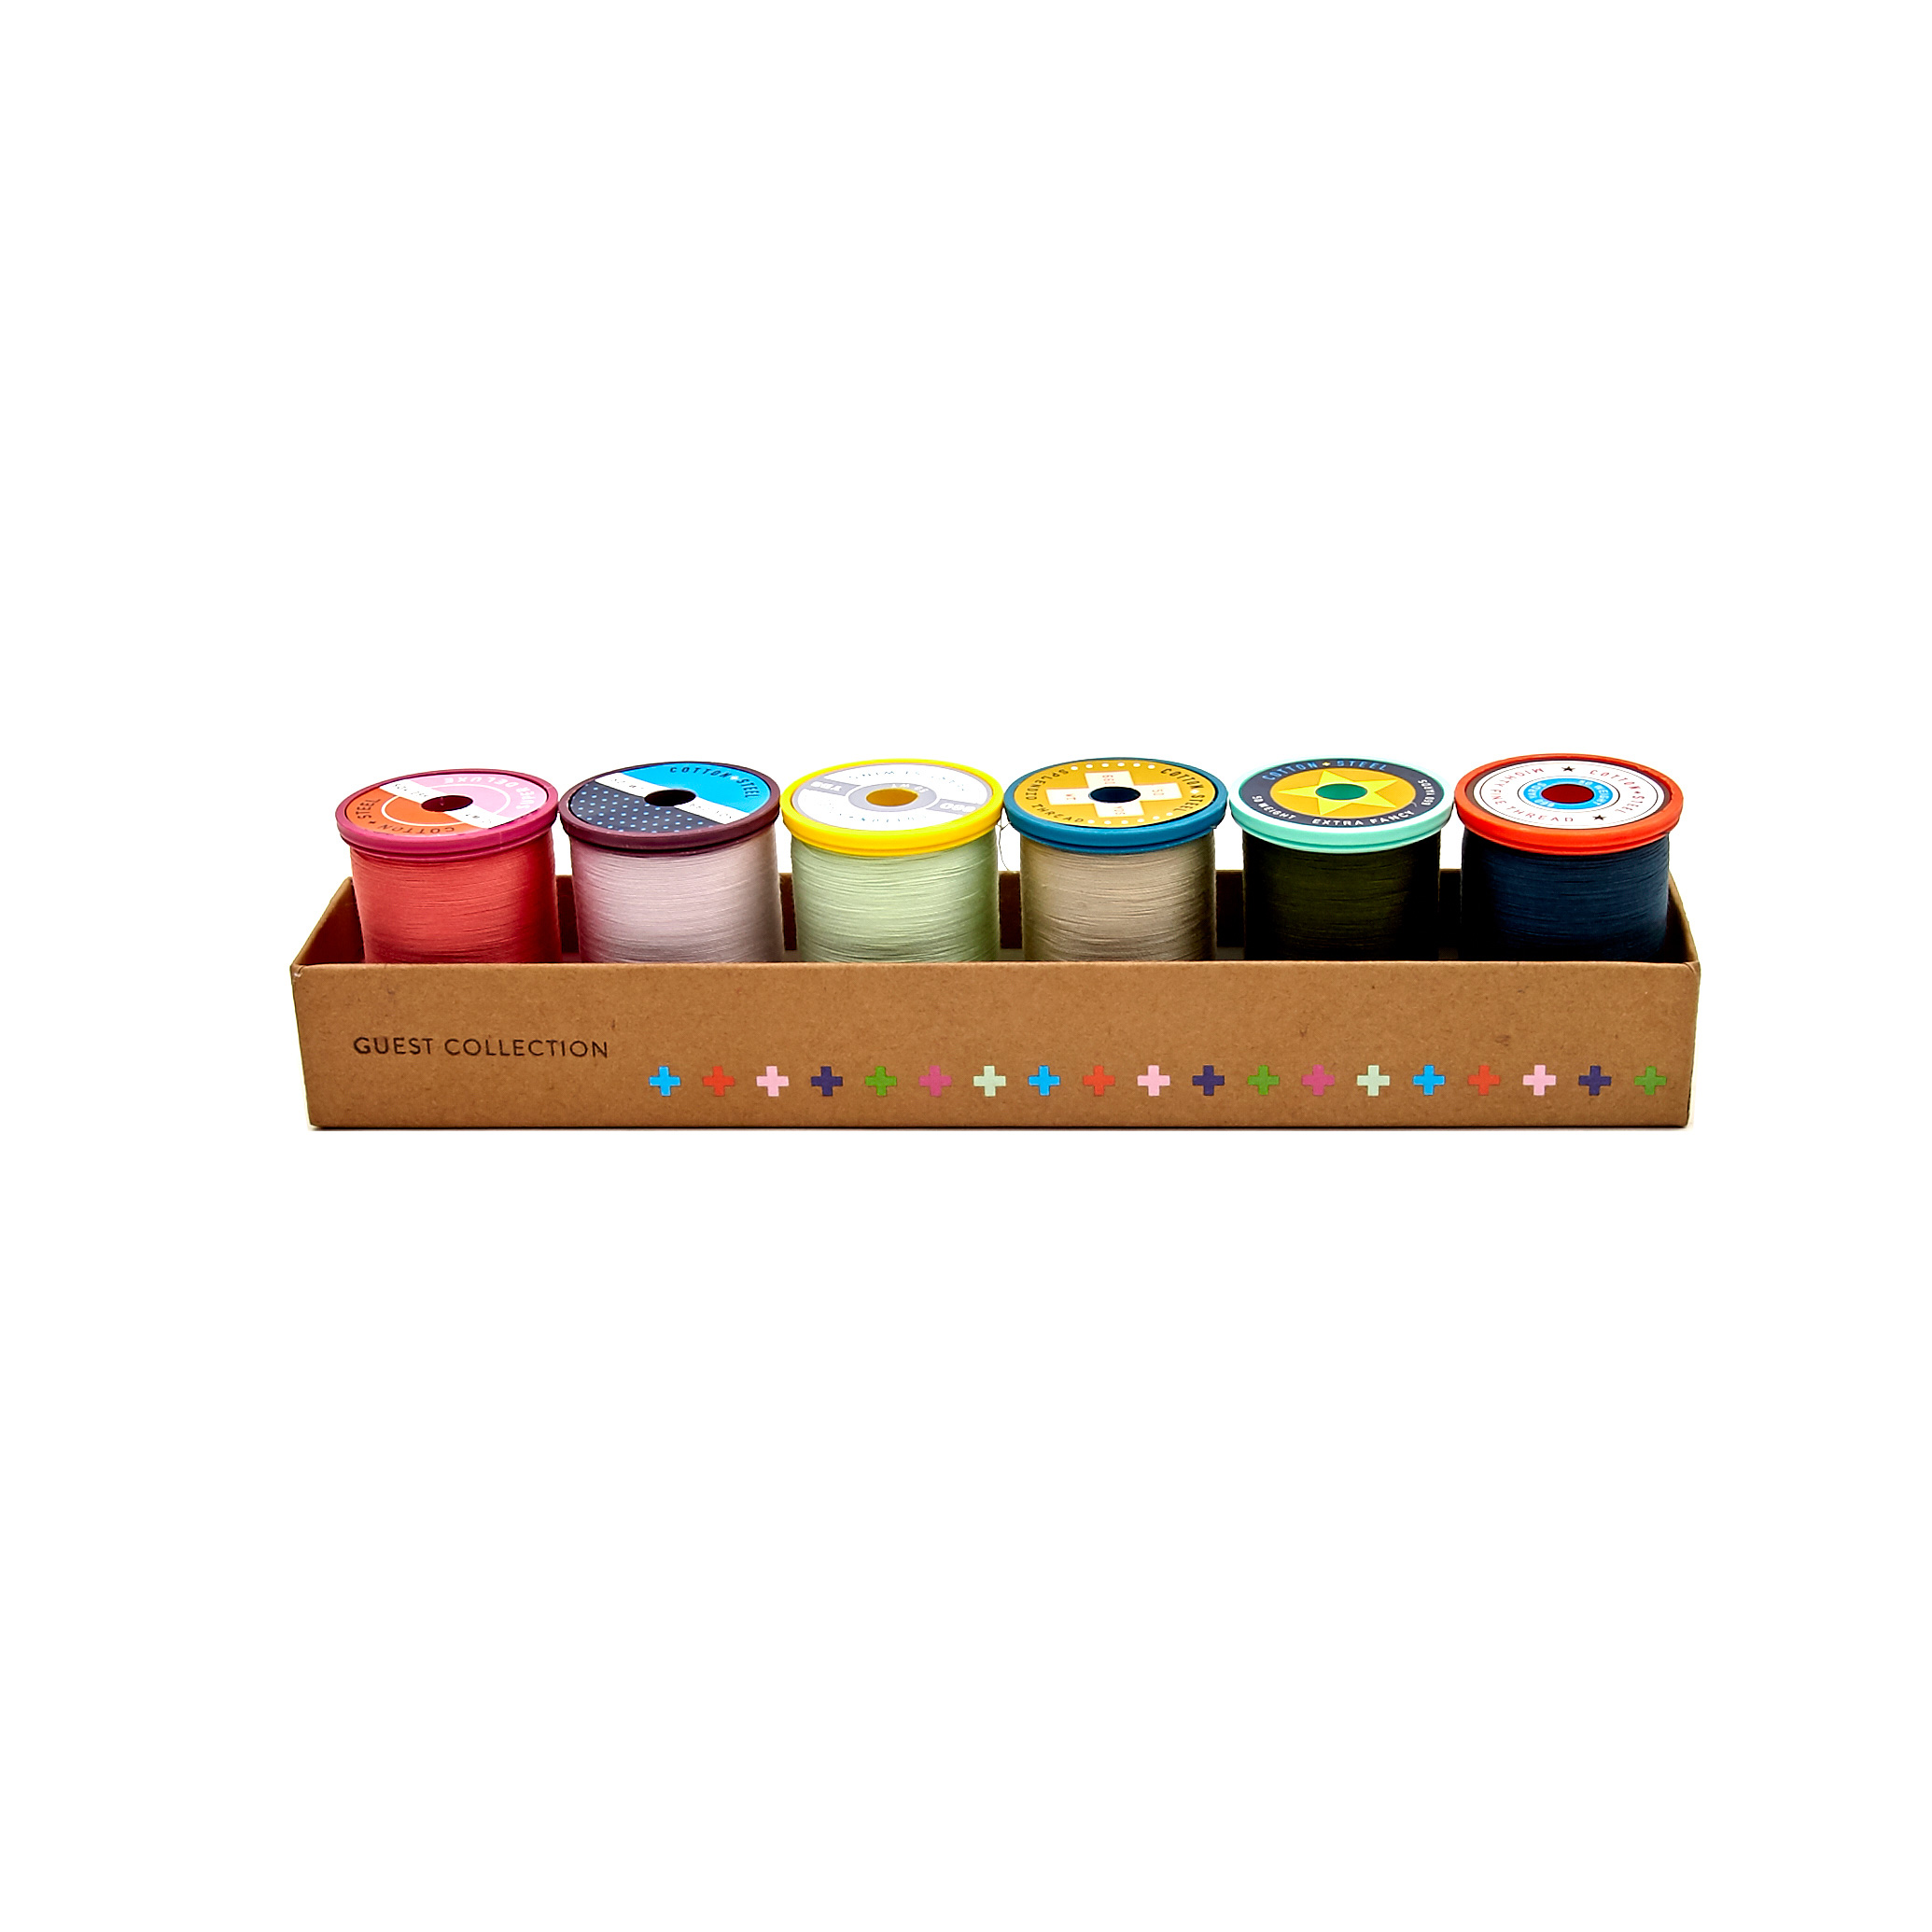 Image of Cotton + Steel 50wt. Cotton Thread Set by Sulky- Rifle Paper Collection (Menagerie from Rifle Paper Co.)